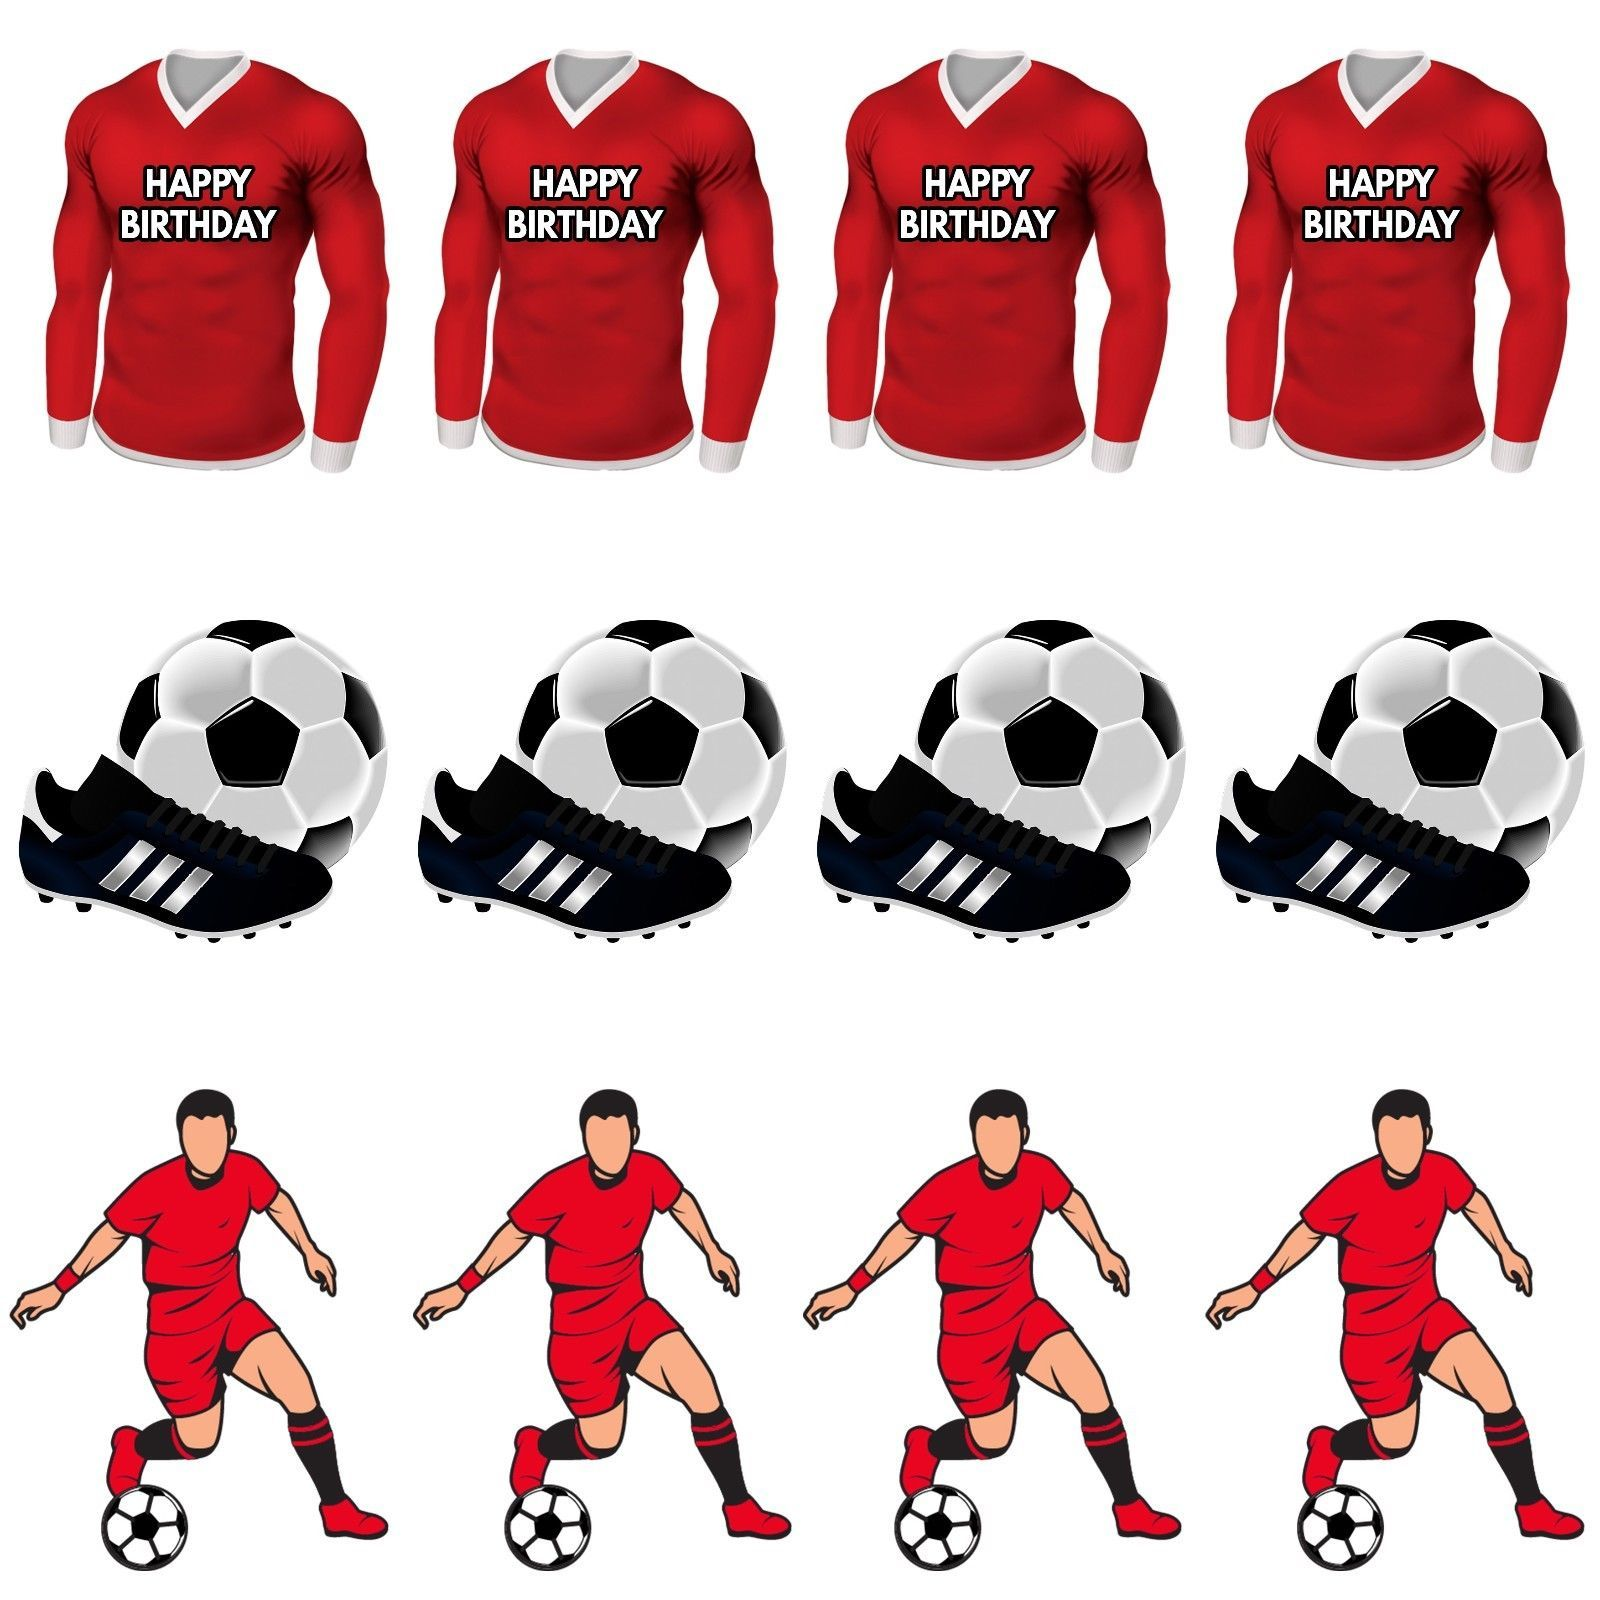 Precut Birthday Football Party Pack Cup Cake Toppers Decorations Red Shirt Kit Liverpool Cake Cake Toppers Football Party